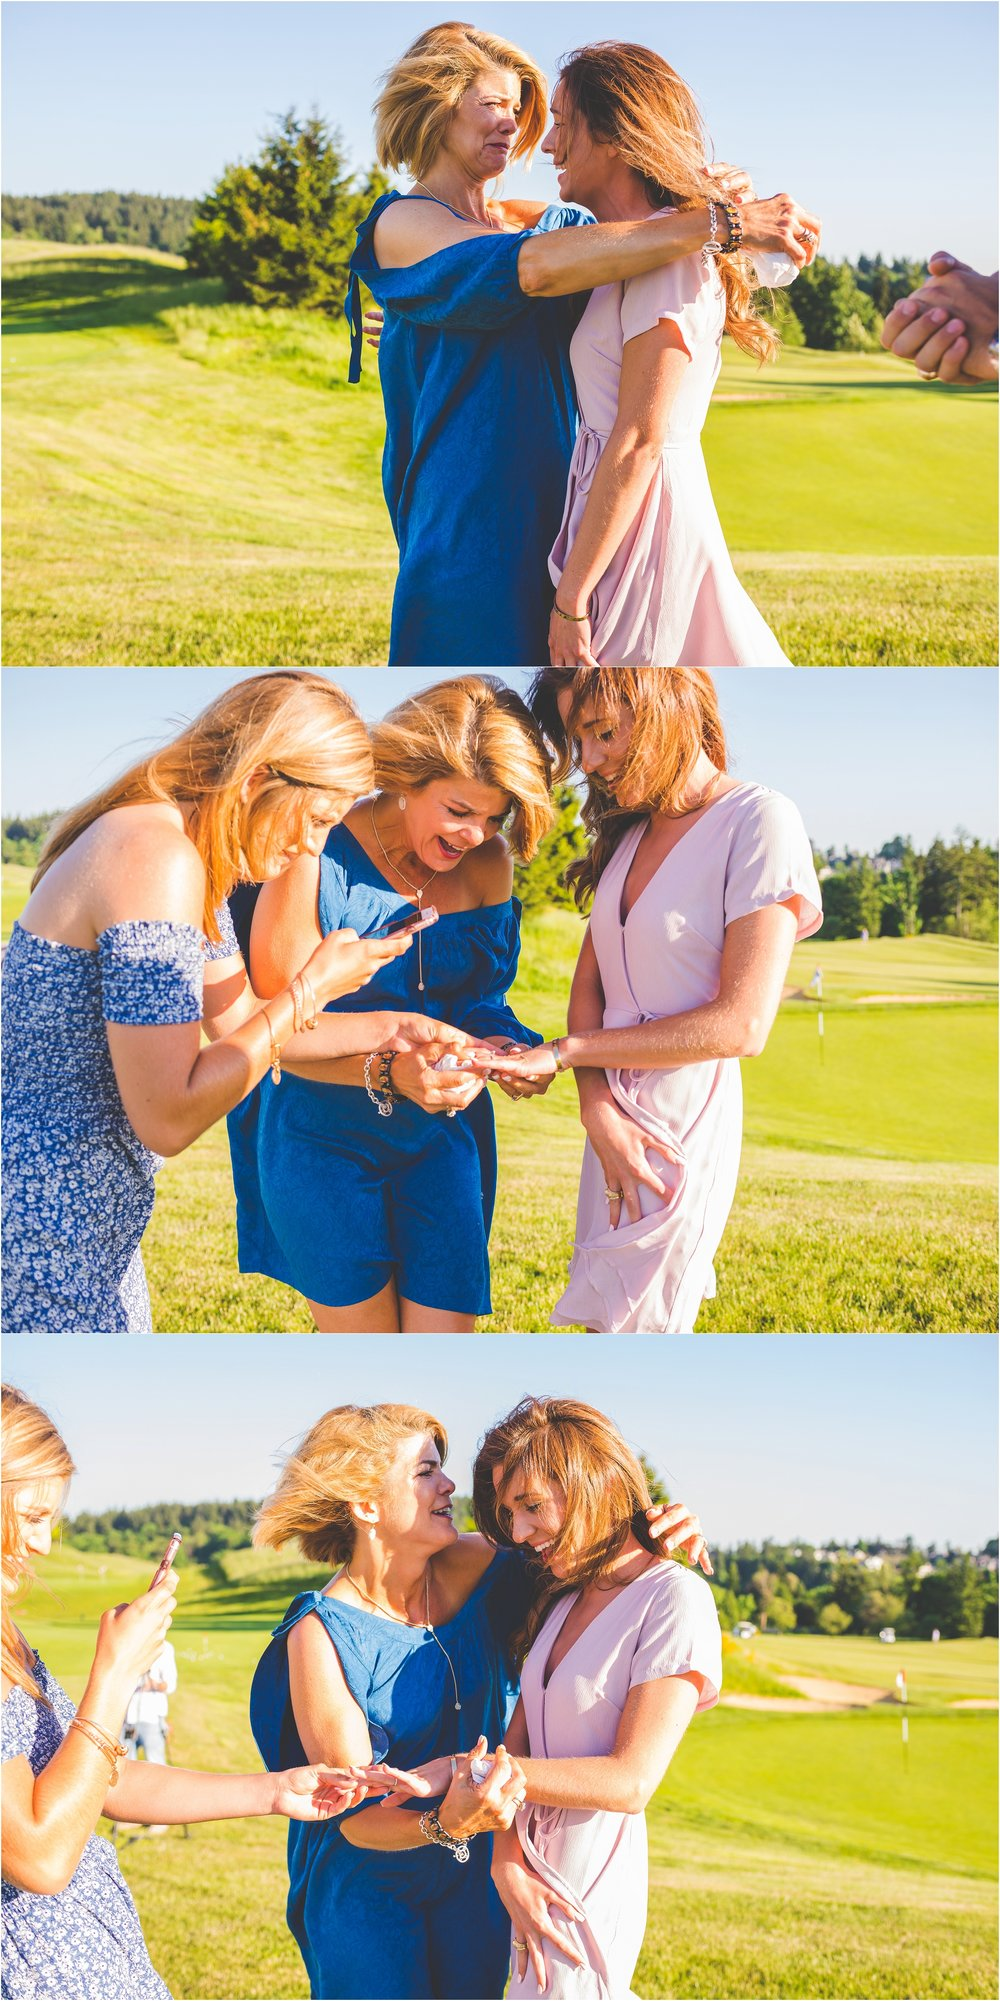 newcastle-golf-club-proposal-jannicka-mayte-seattle-washington-engagement-wedding-photographer_0012.jpg